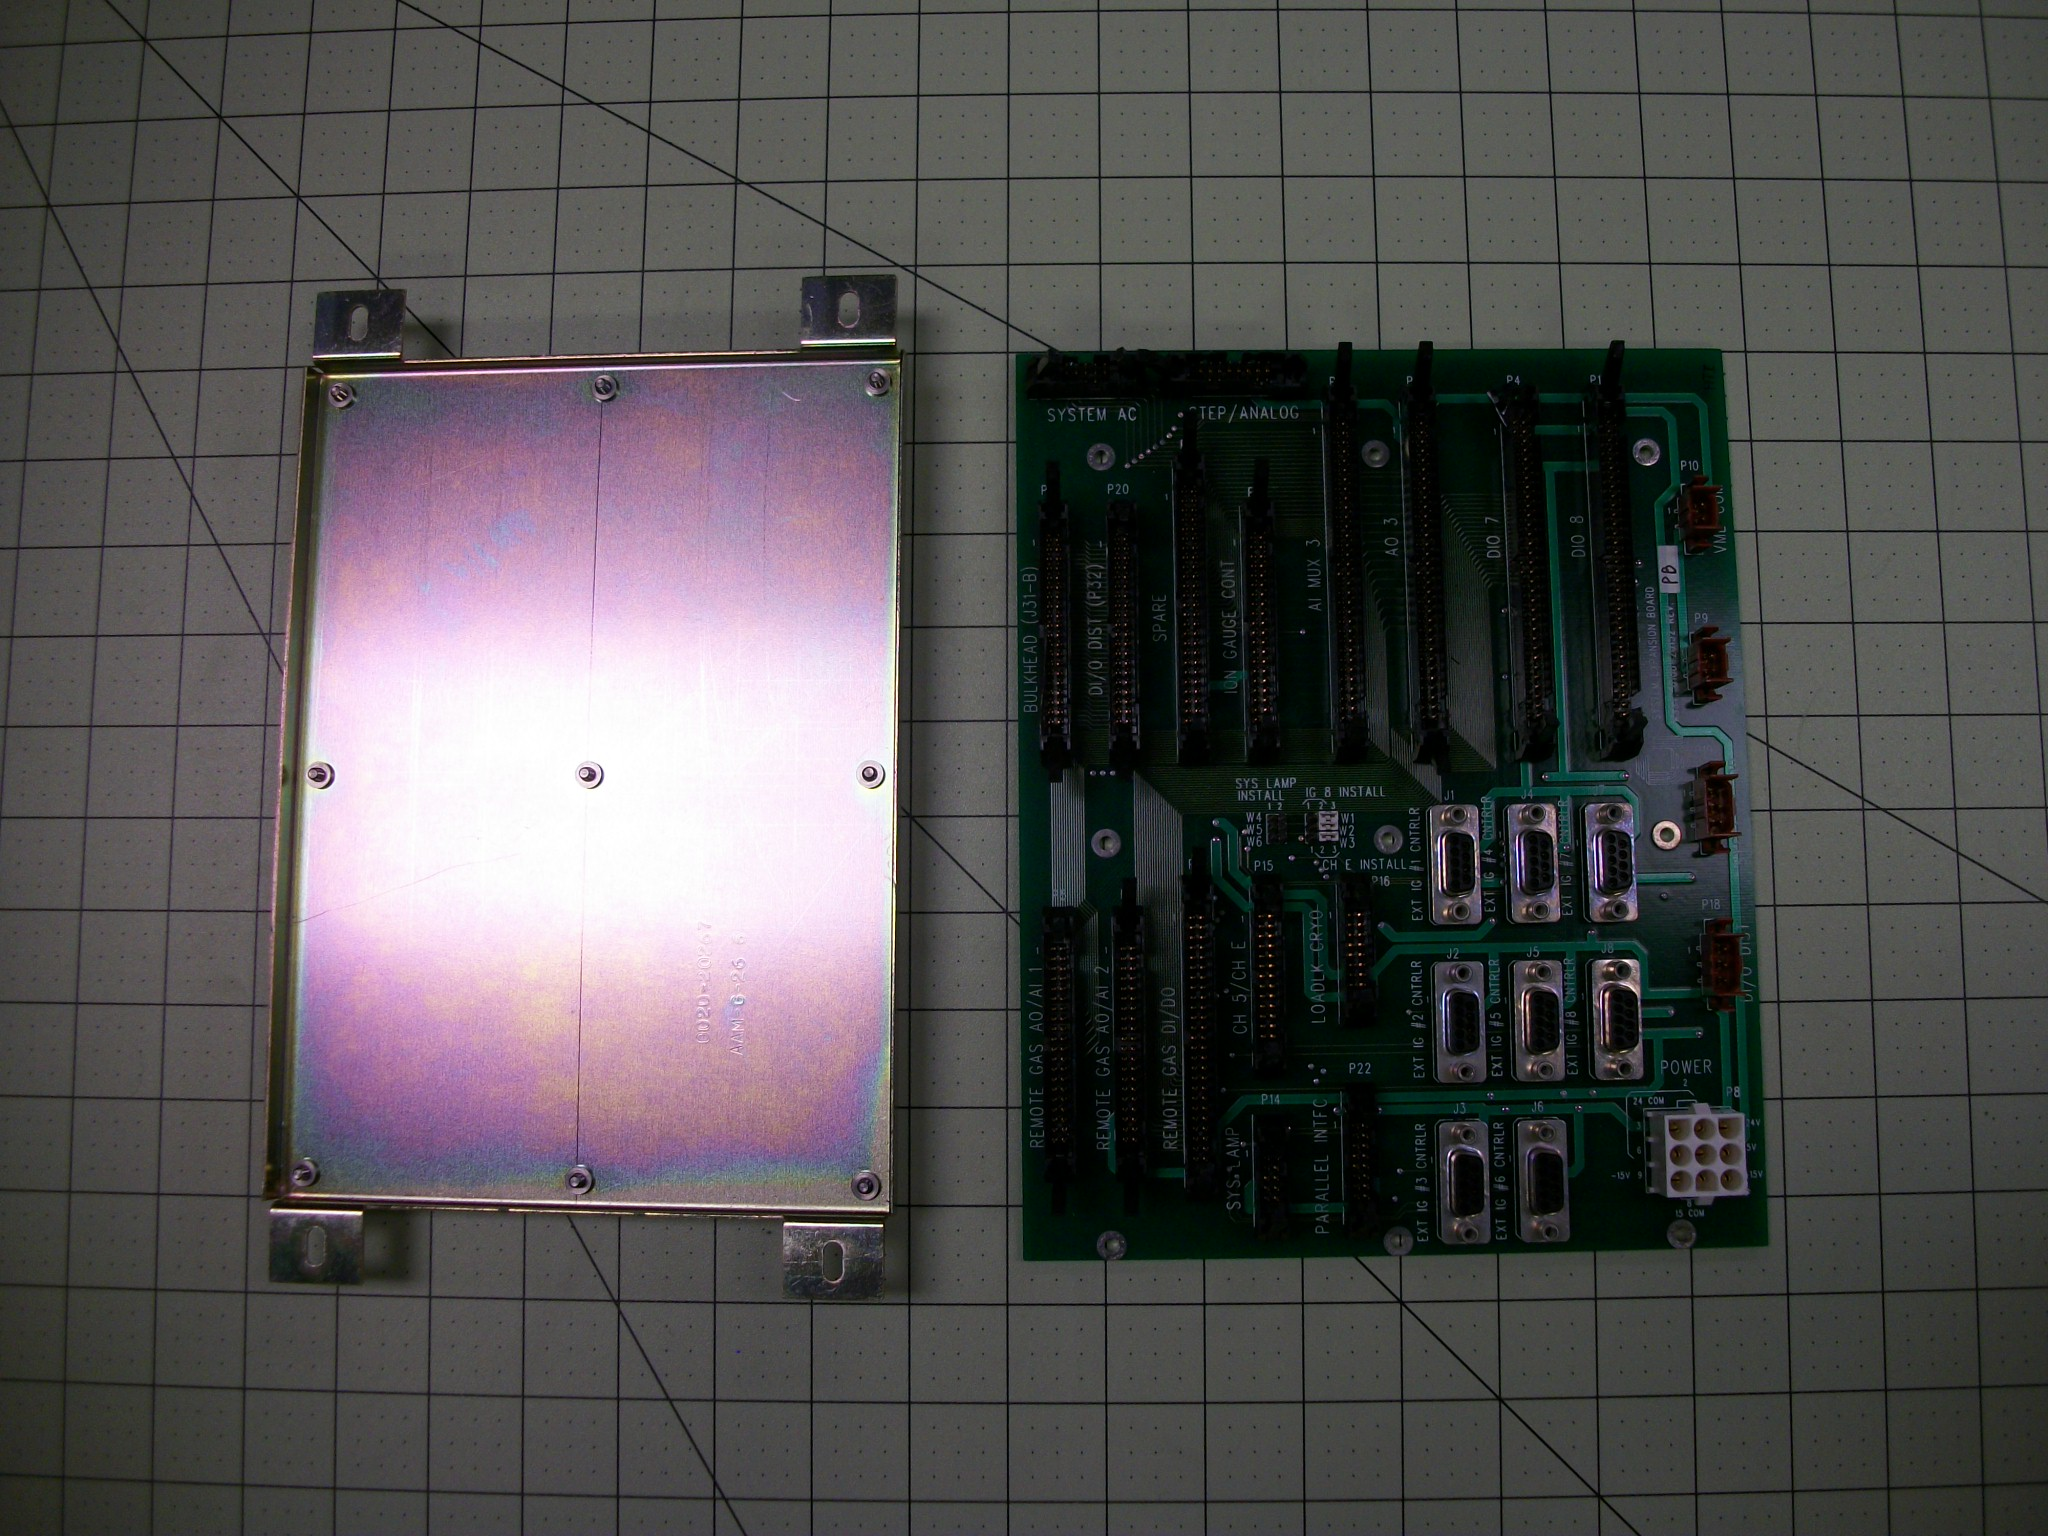 System expansion board w/bracket